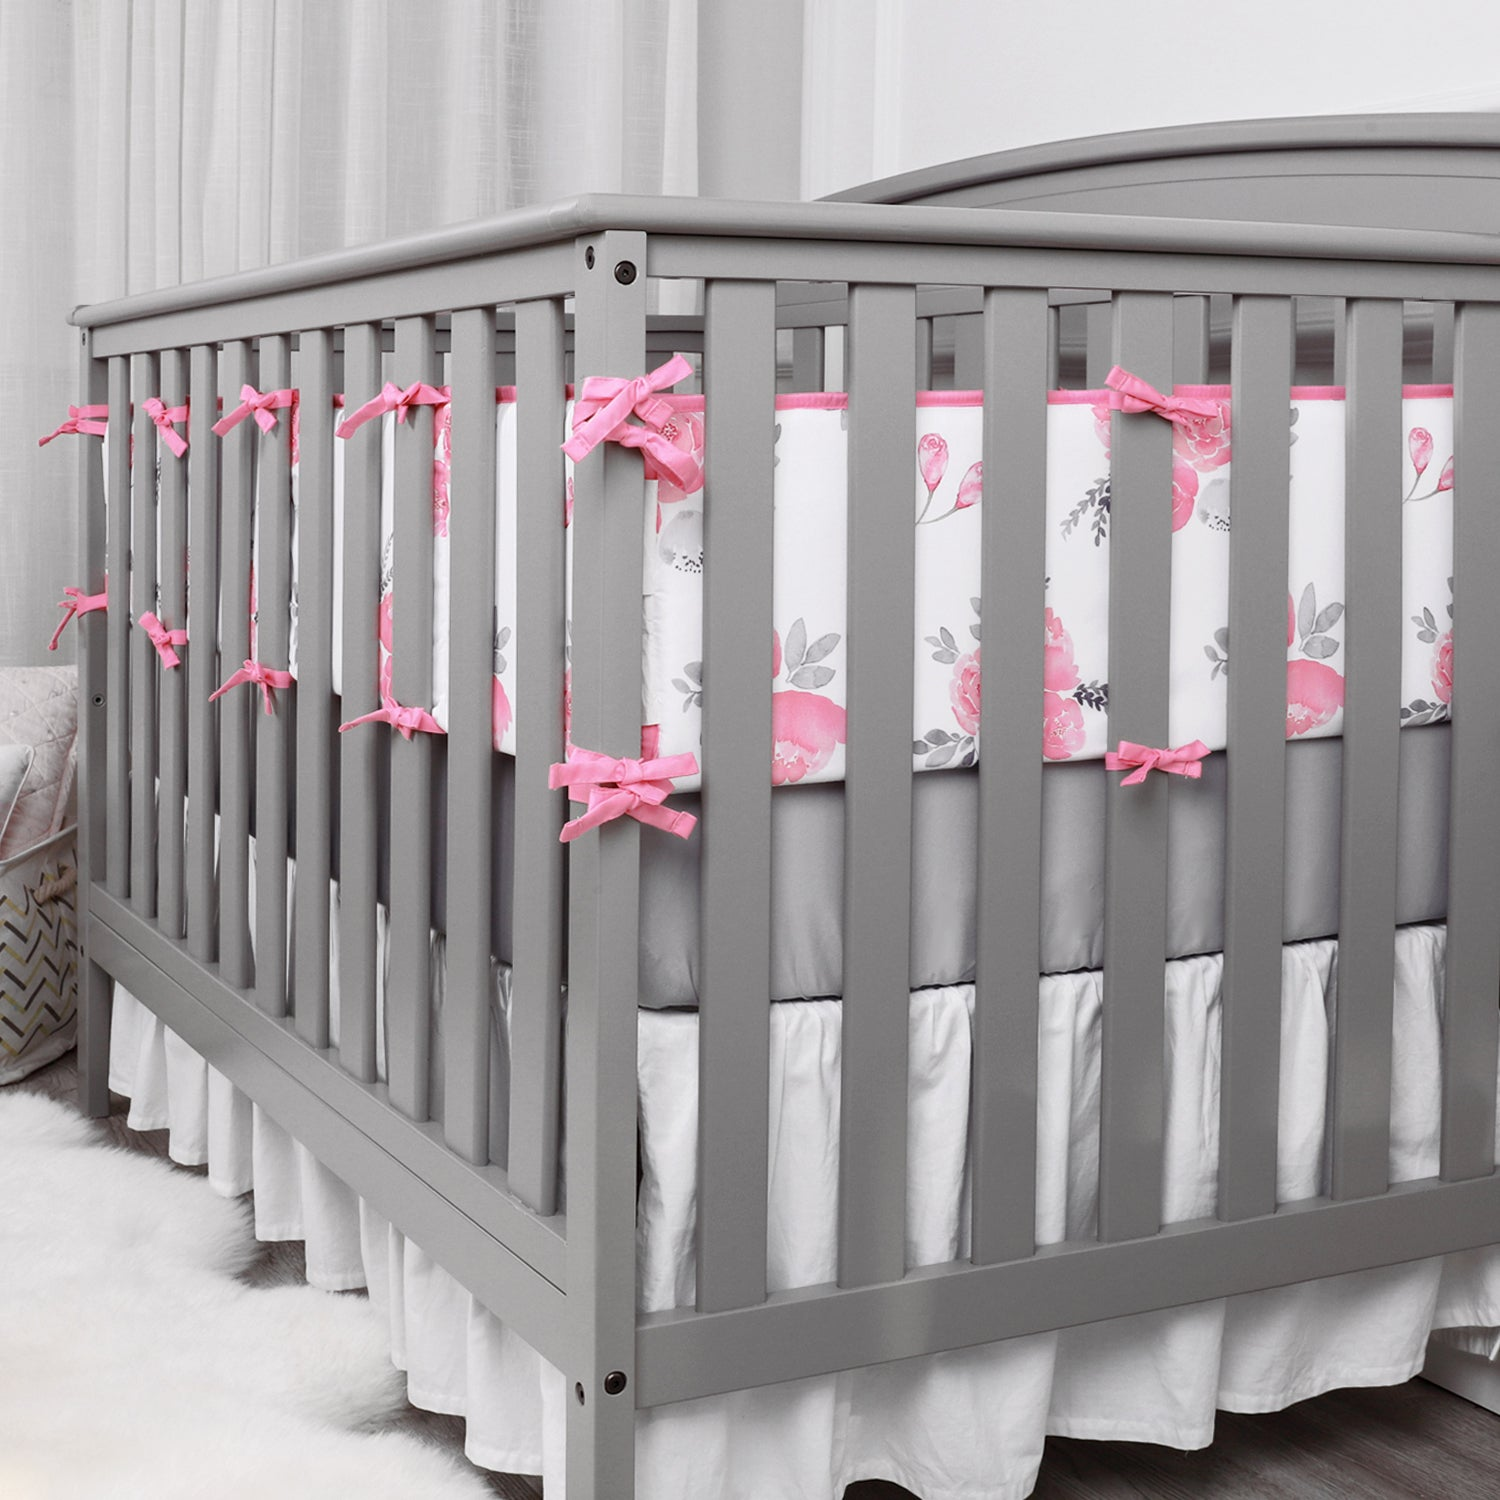 OUT OF STOCK - Microfiber Crib Bumper Pads - Watercolor Flowers